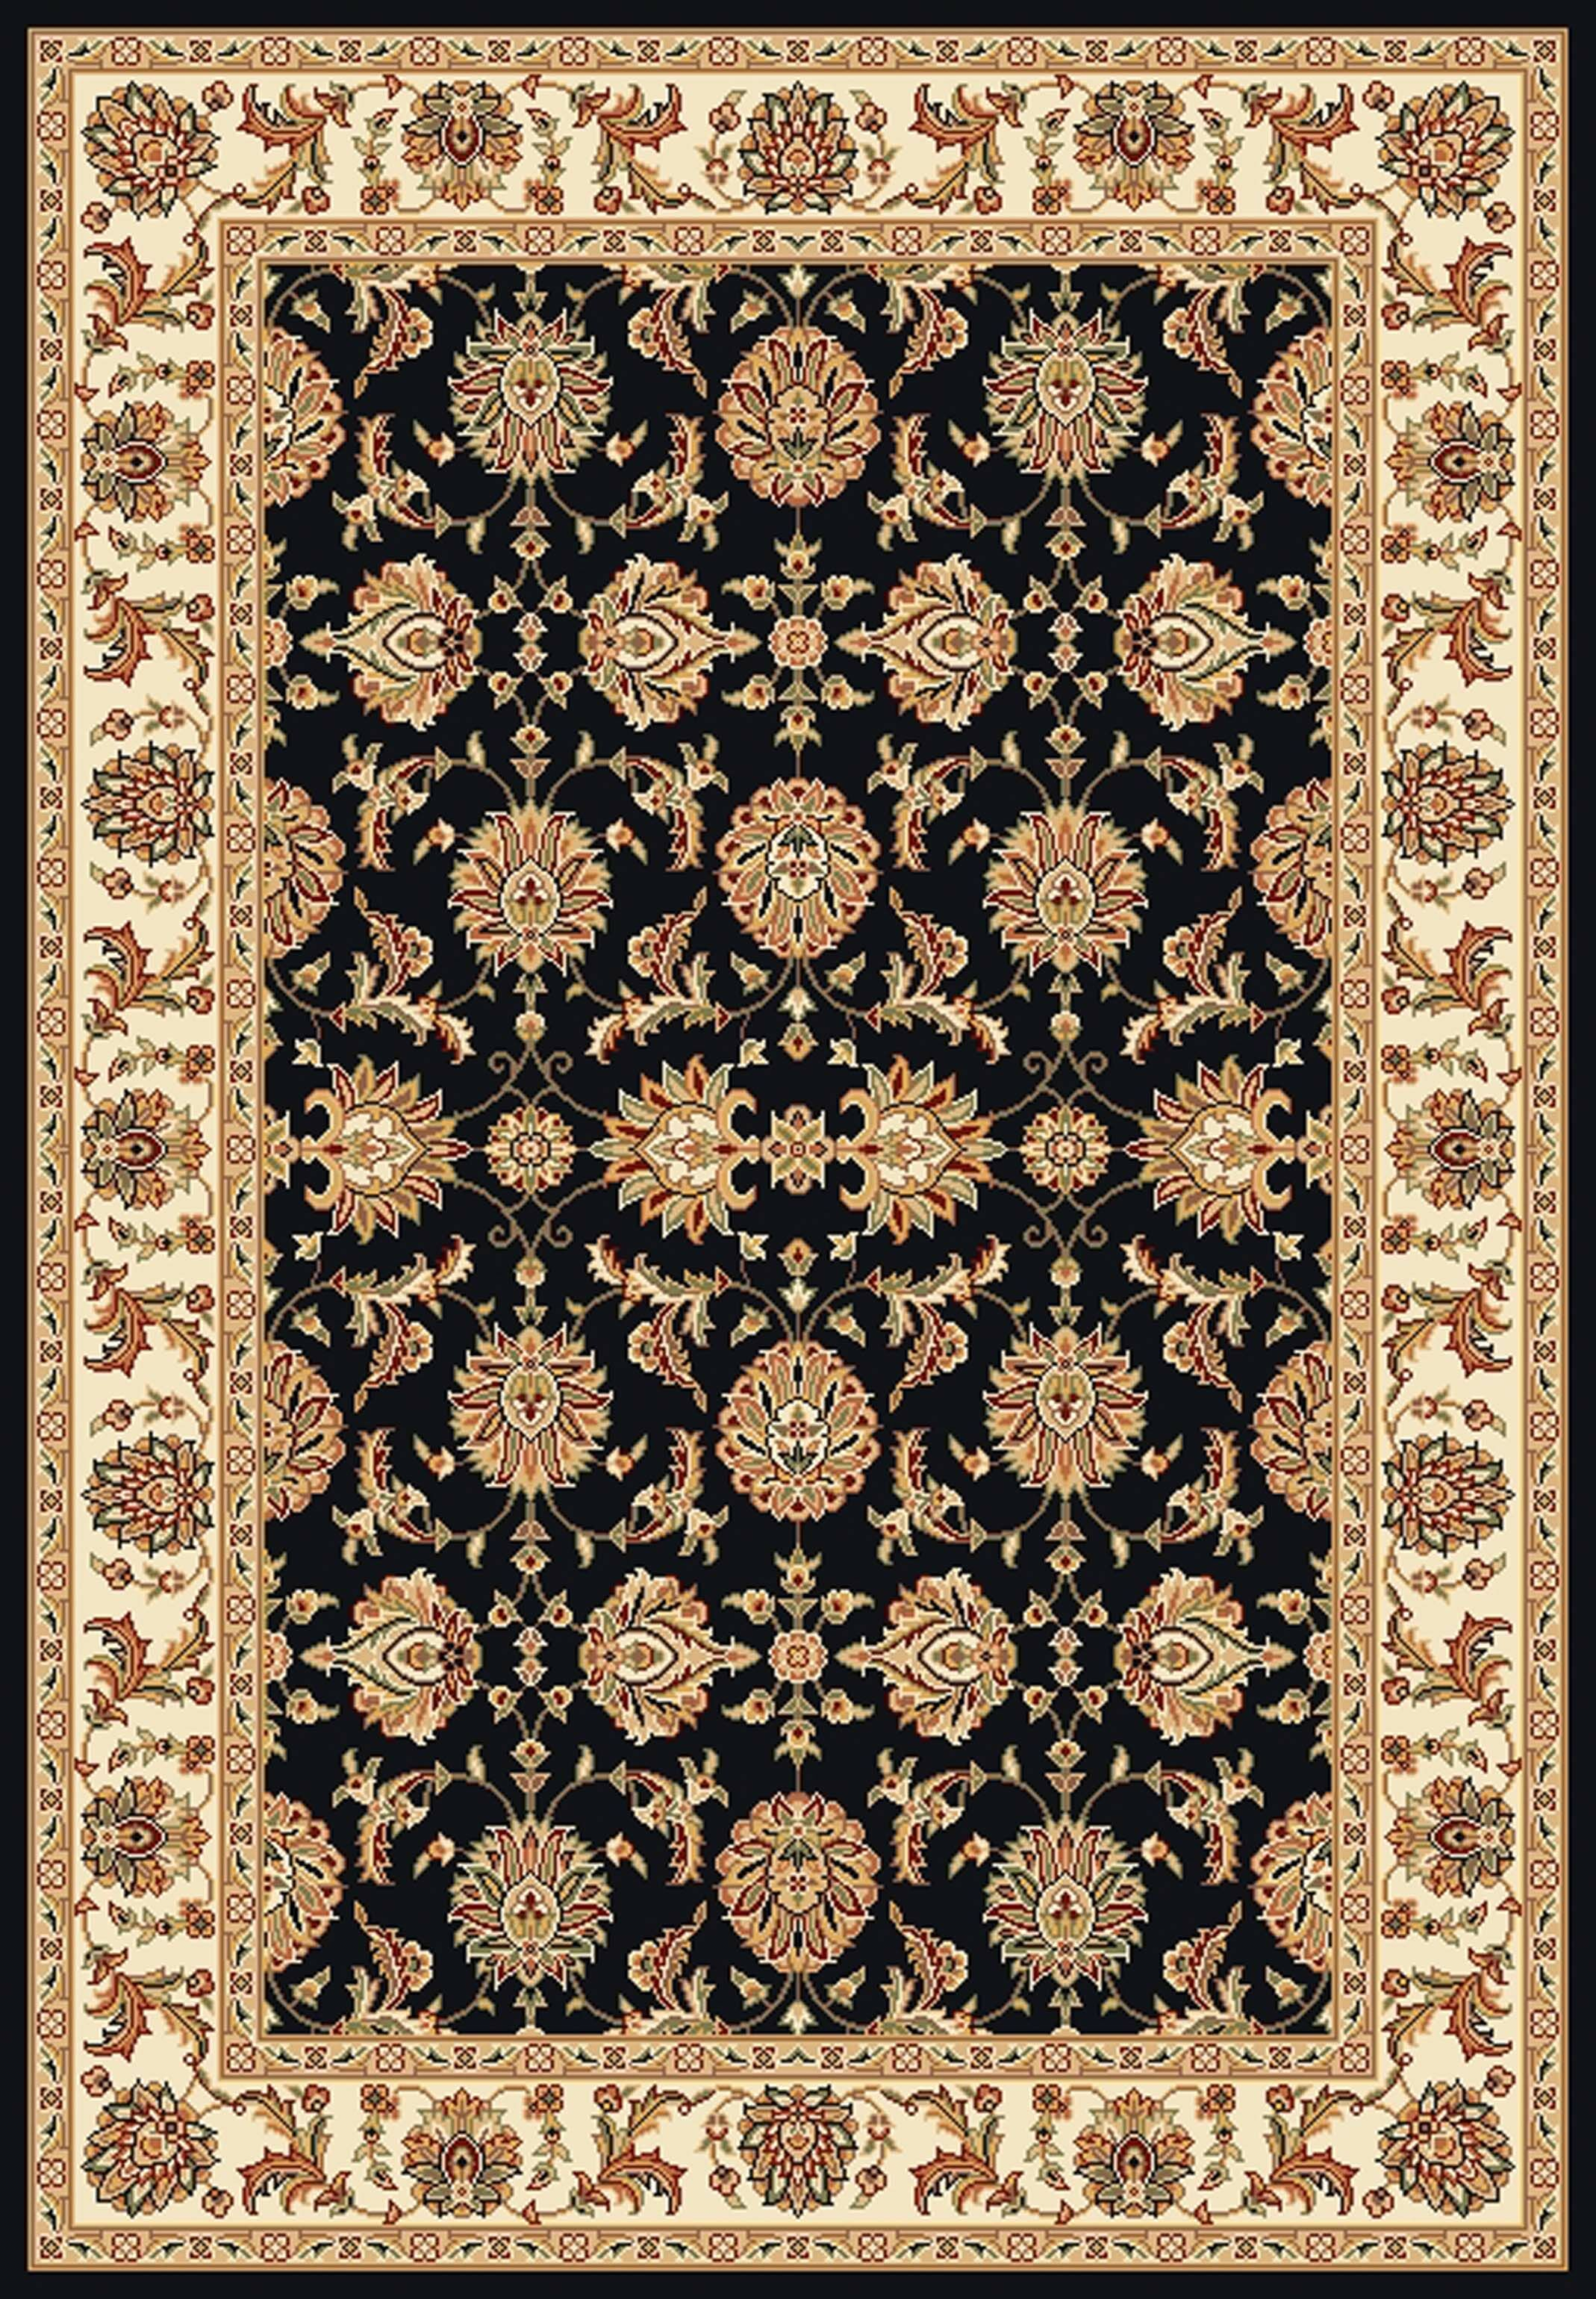 Bellville Kashan Hand-Woven Black/Ivory Area Rug Rug Size: Rectangle 9'10